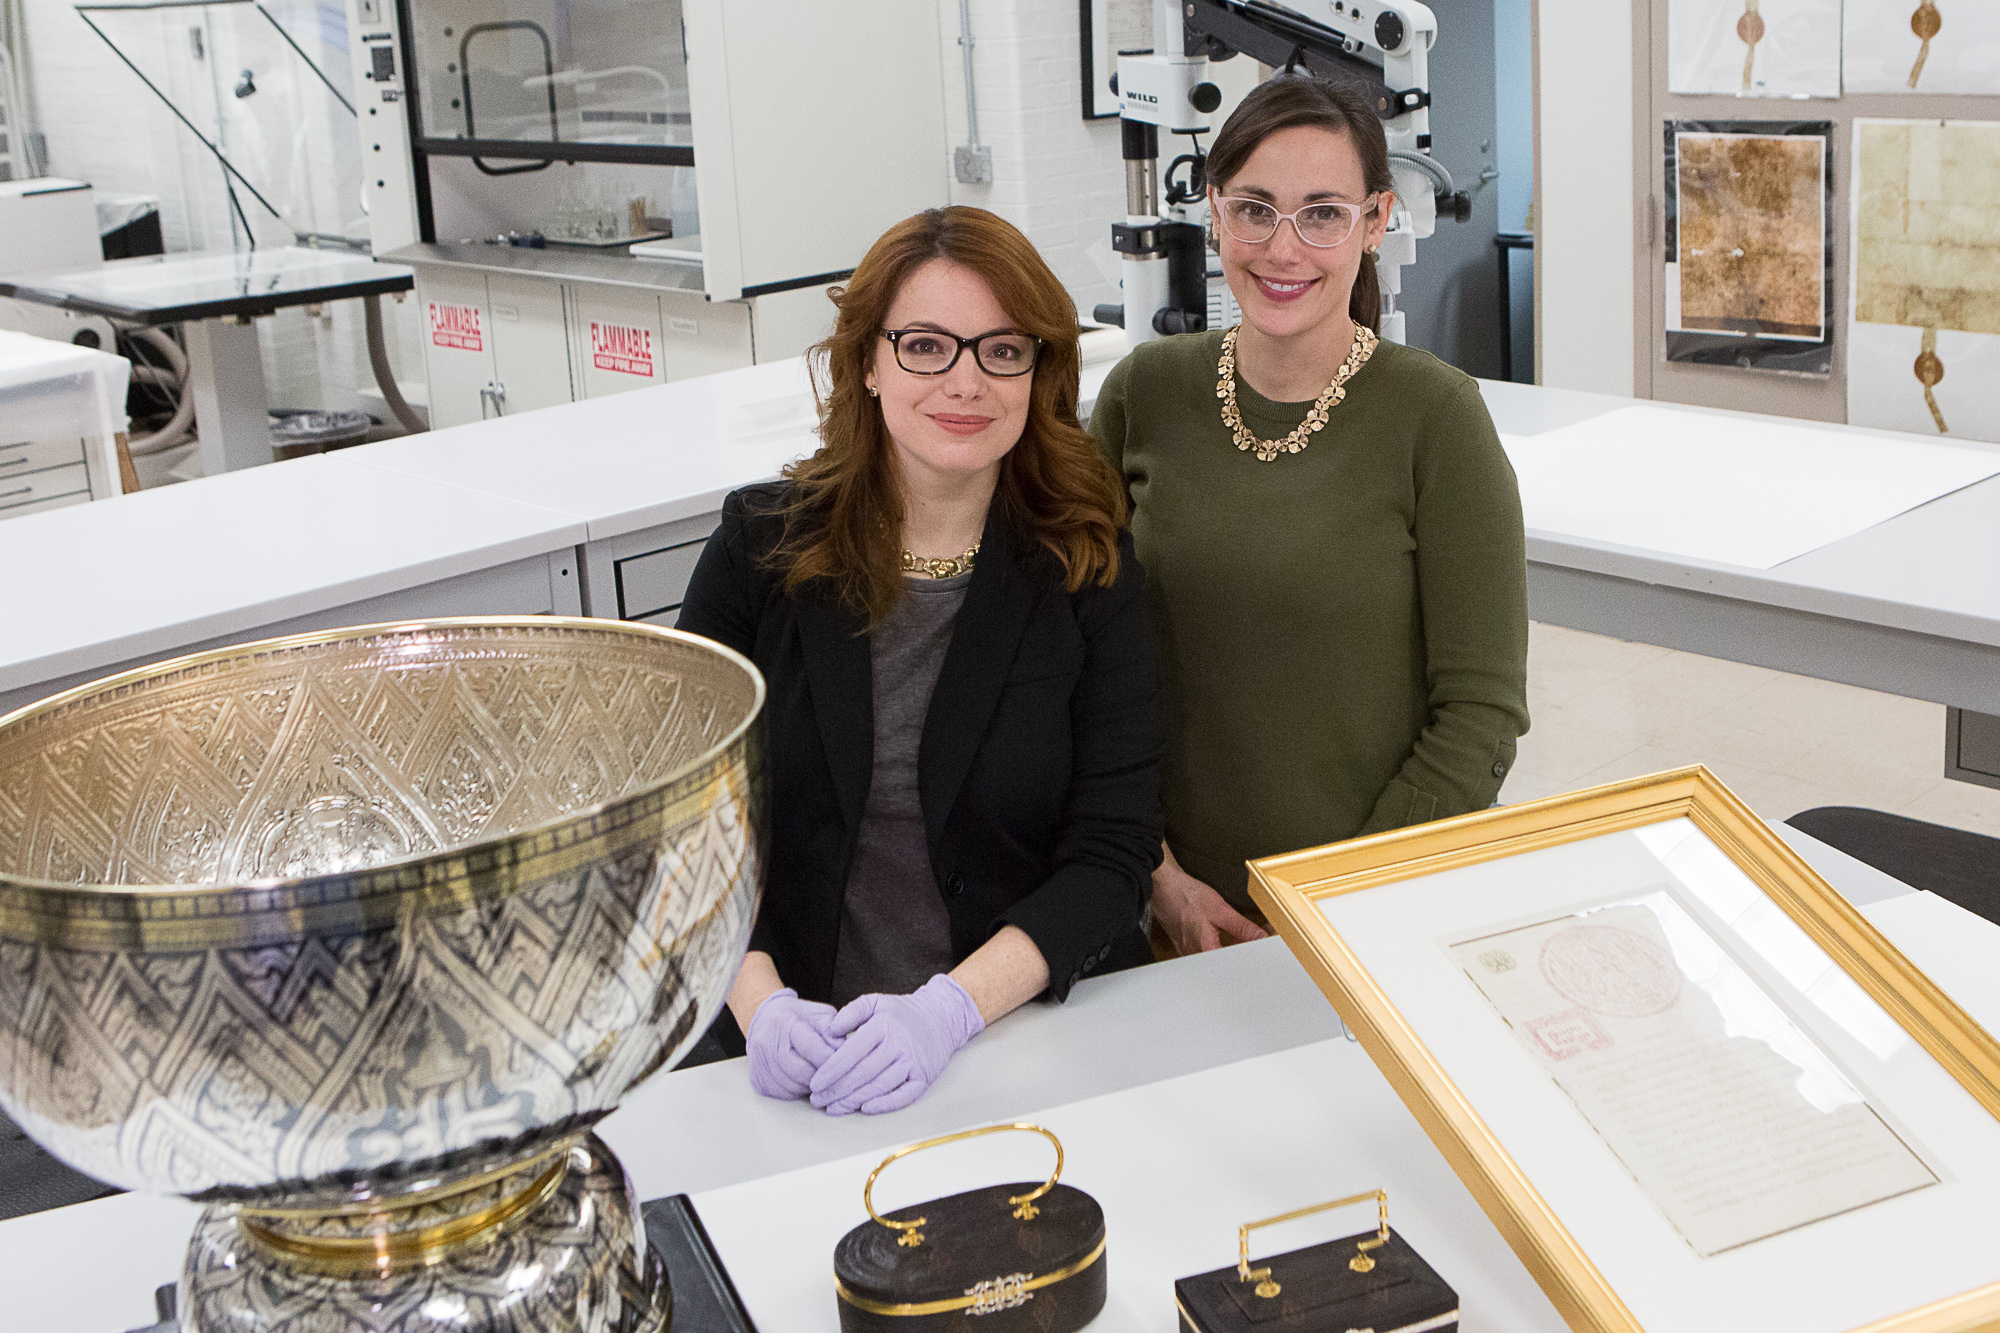 National Archives supervisory conservator Abigail Aldrich and senior conservator Lauren Varga share several items including a silver niello bowl